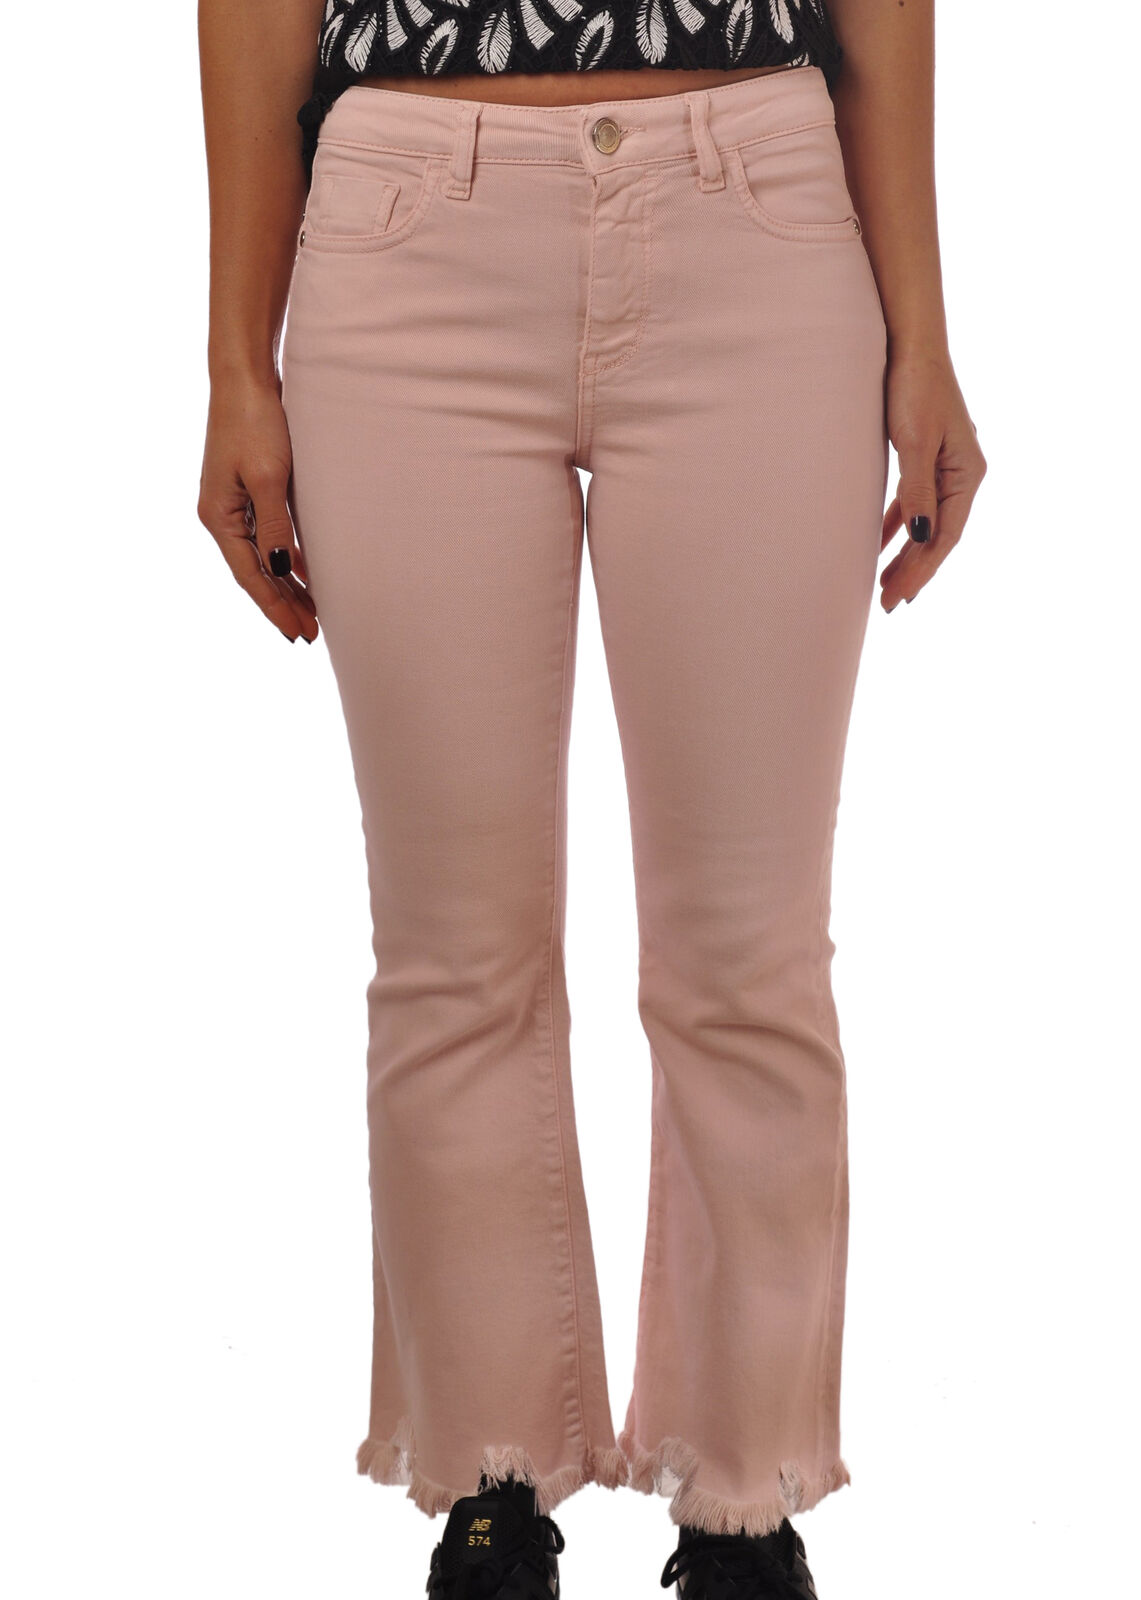 Pinko - Pants-Pants - Woman - Pink - 4771409G184356